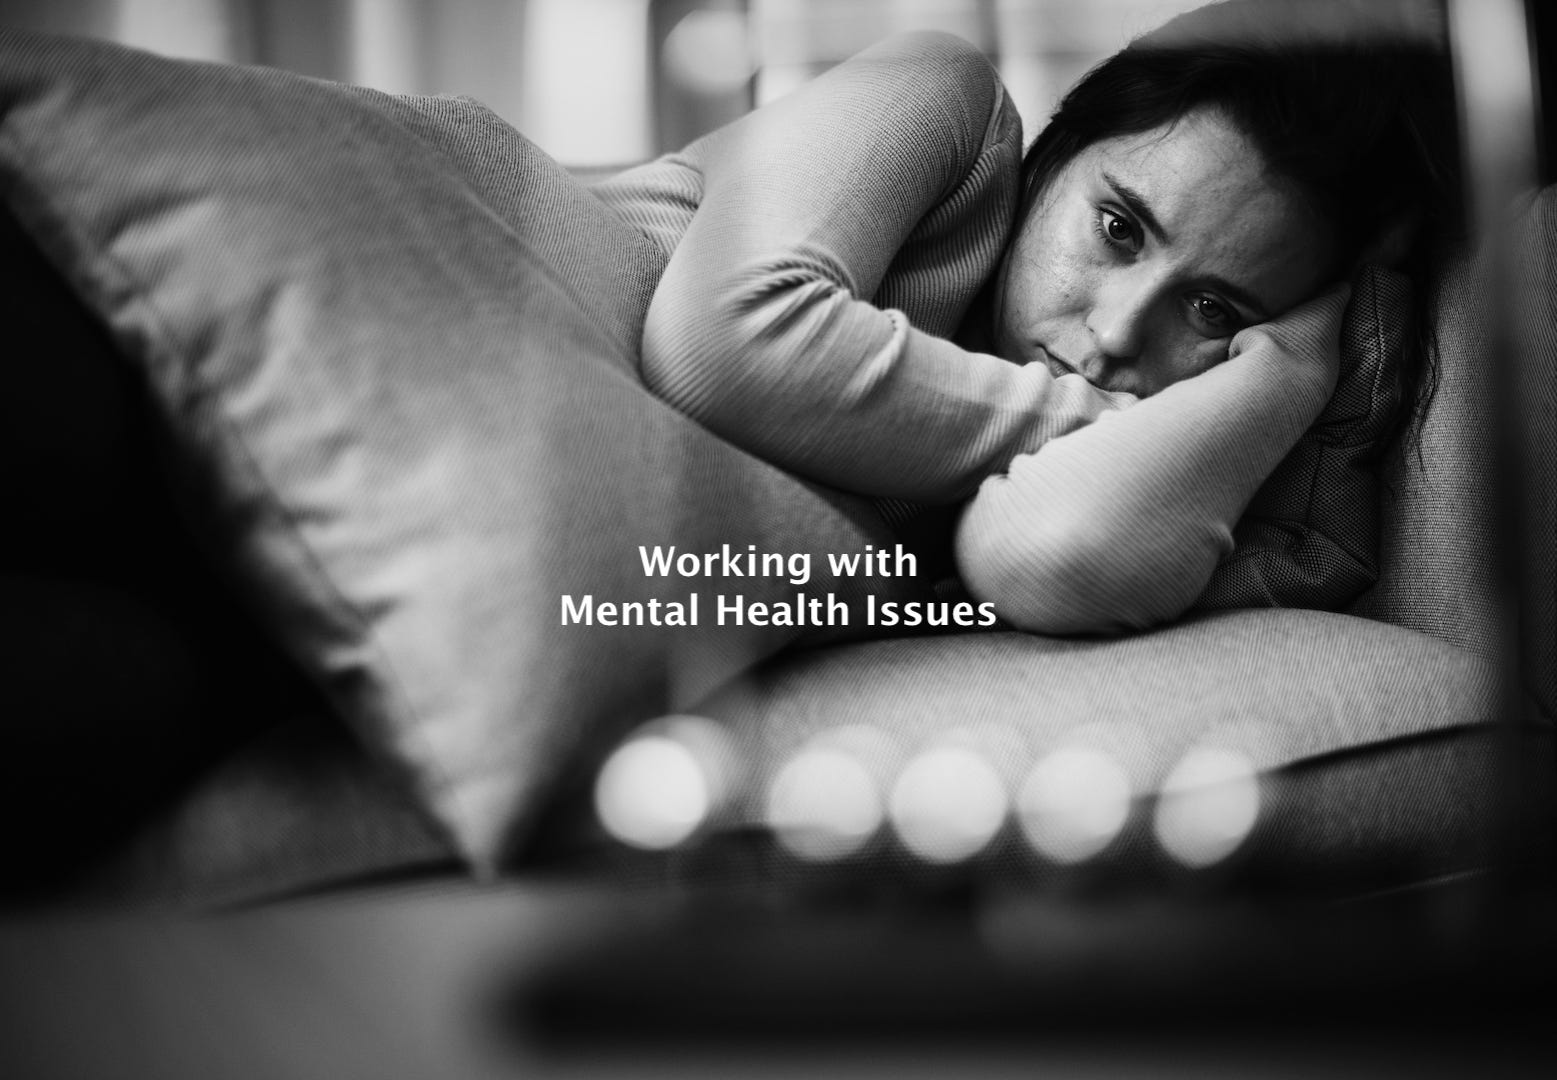 Part 8 of 12 - Working with Mental Health Issues (Bundle)